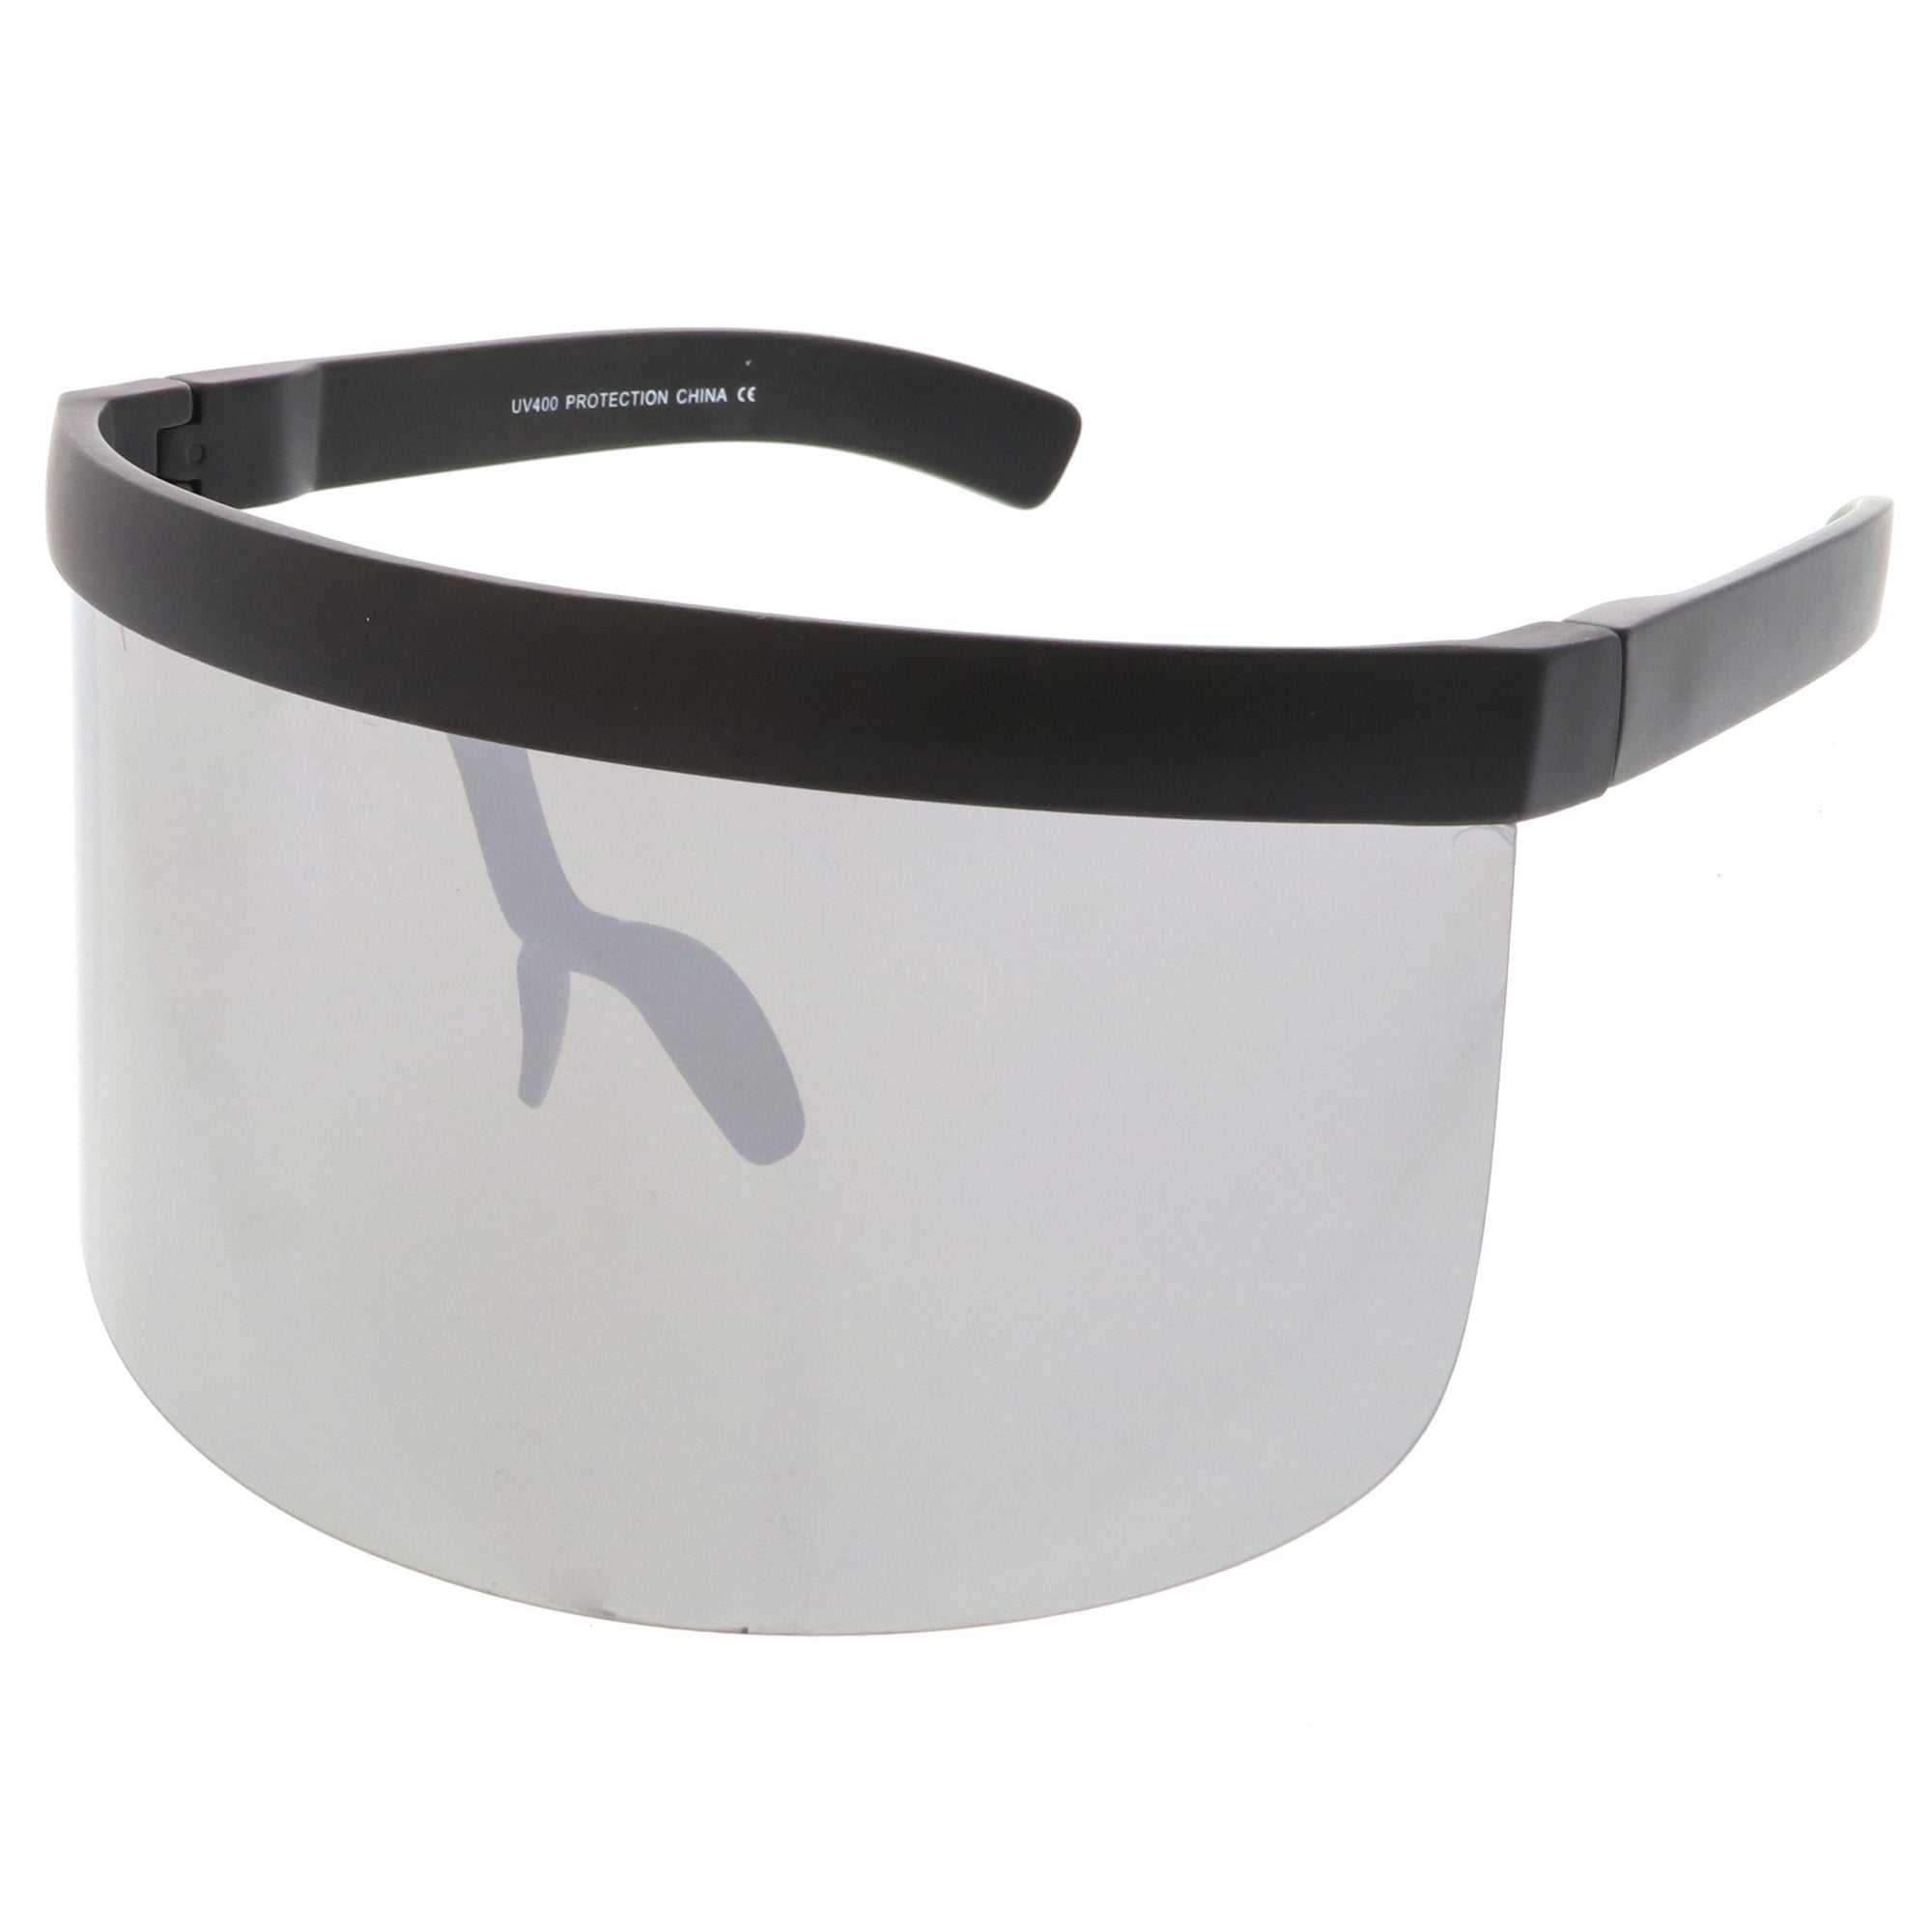 5d37097ee30 ... Oversize Novelty Mirrored Lens Shield Visor C453 · Silver Mirror ·  Silver Mirror